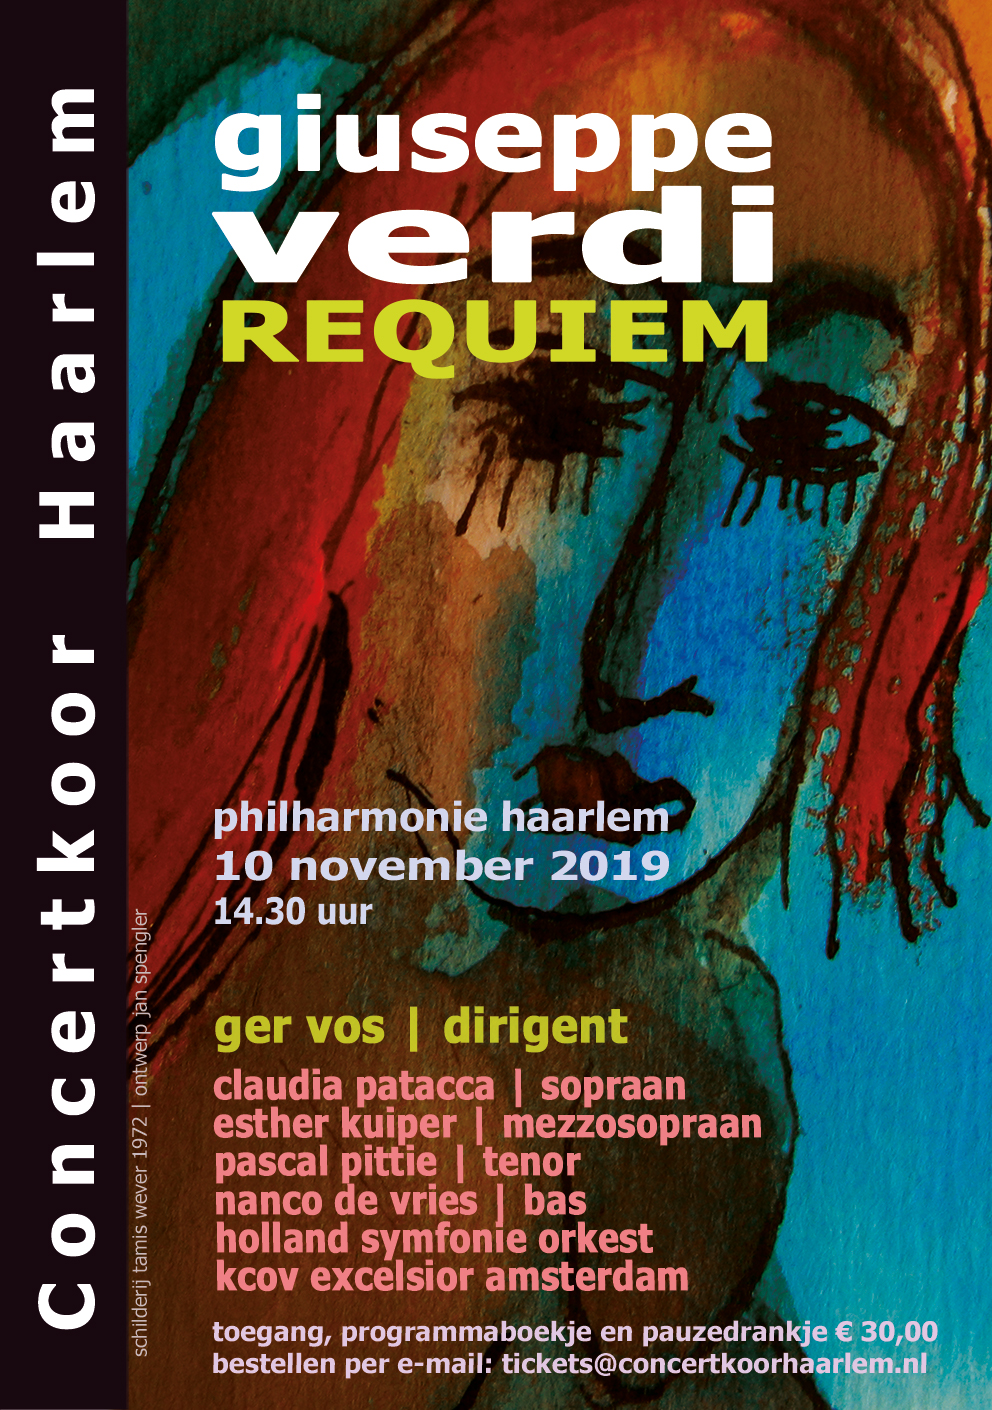 Affiche Requiem by Verdi, 2019